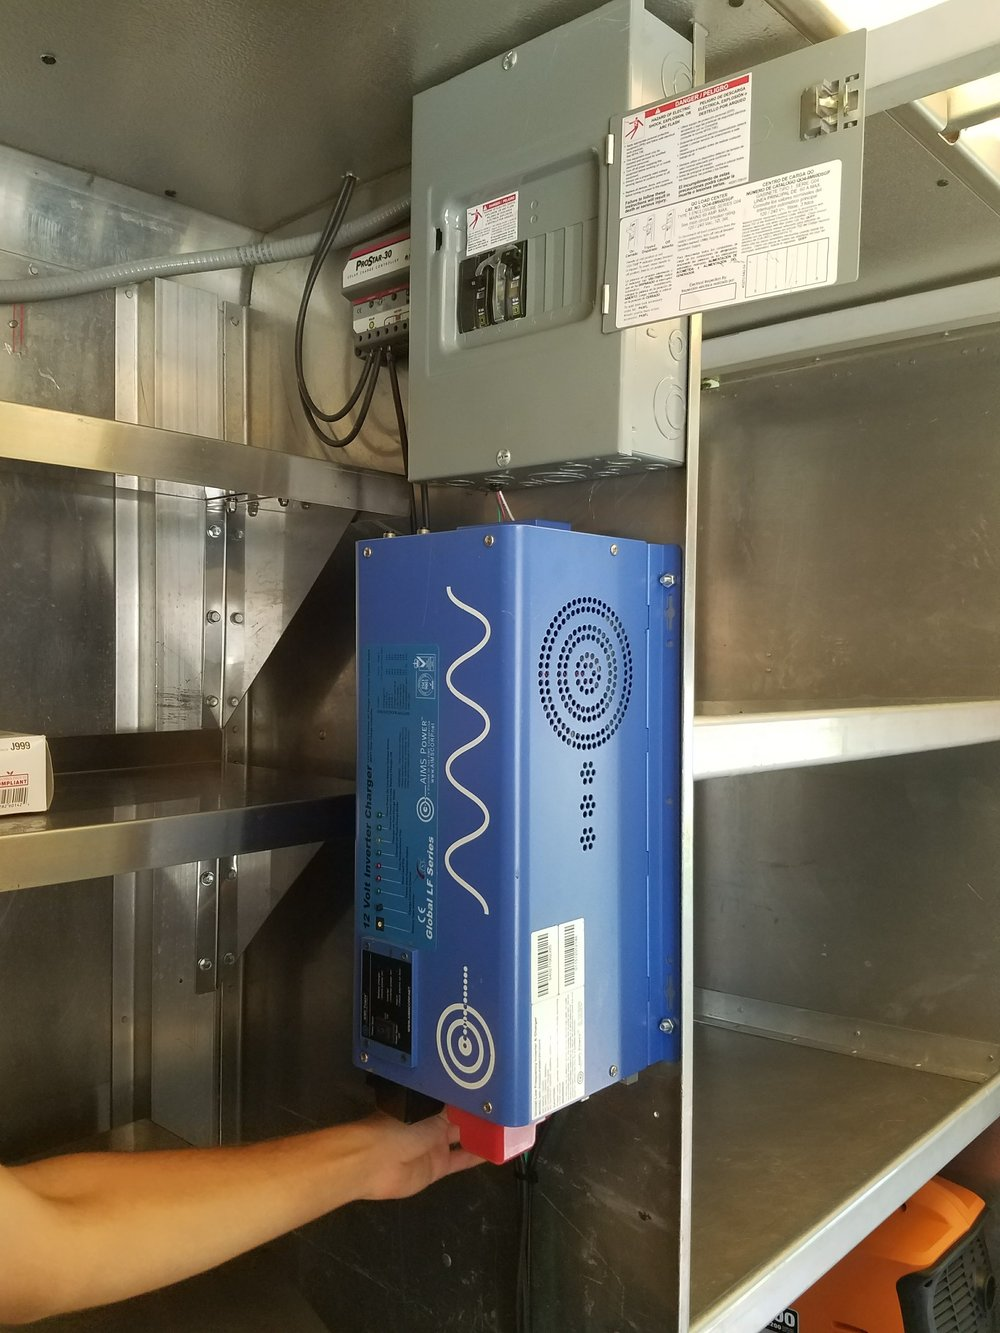 The inverter, converting the energy to be ready-to-use by the lights, conveyor belts, fans, and other electrical appliances in the truck - photo by Olivia Foster